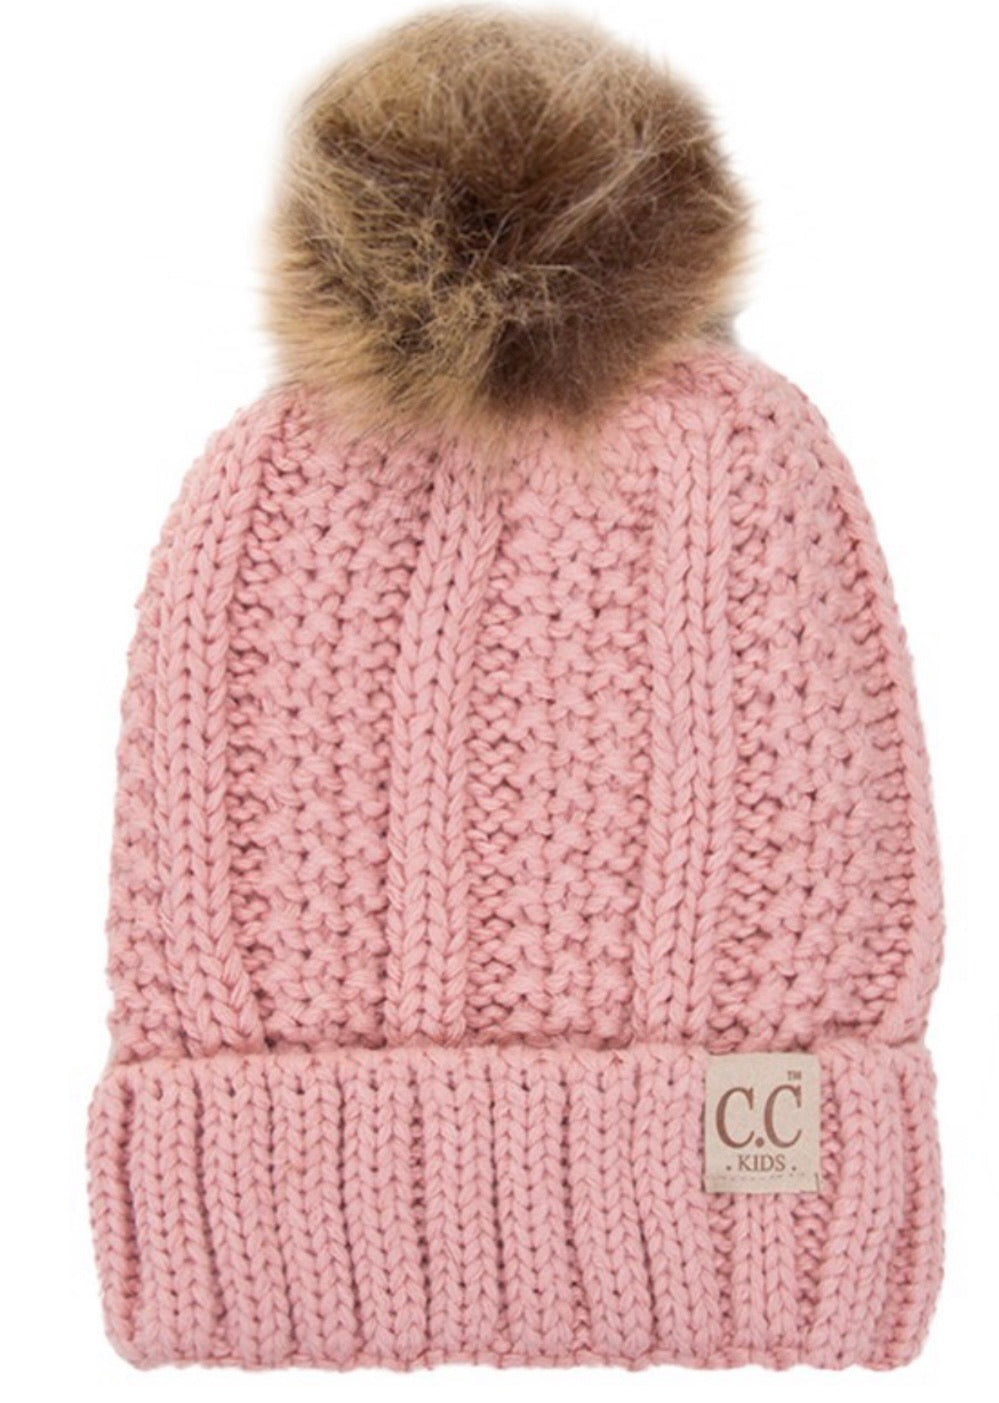 KIDS Fleece Lined C.C. Pom Beanies- 5 colors available